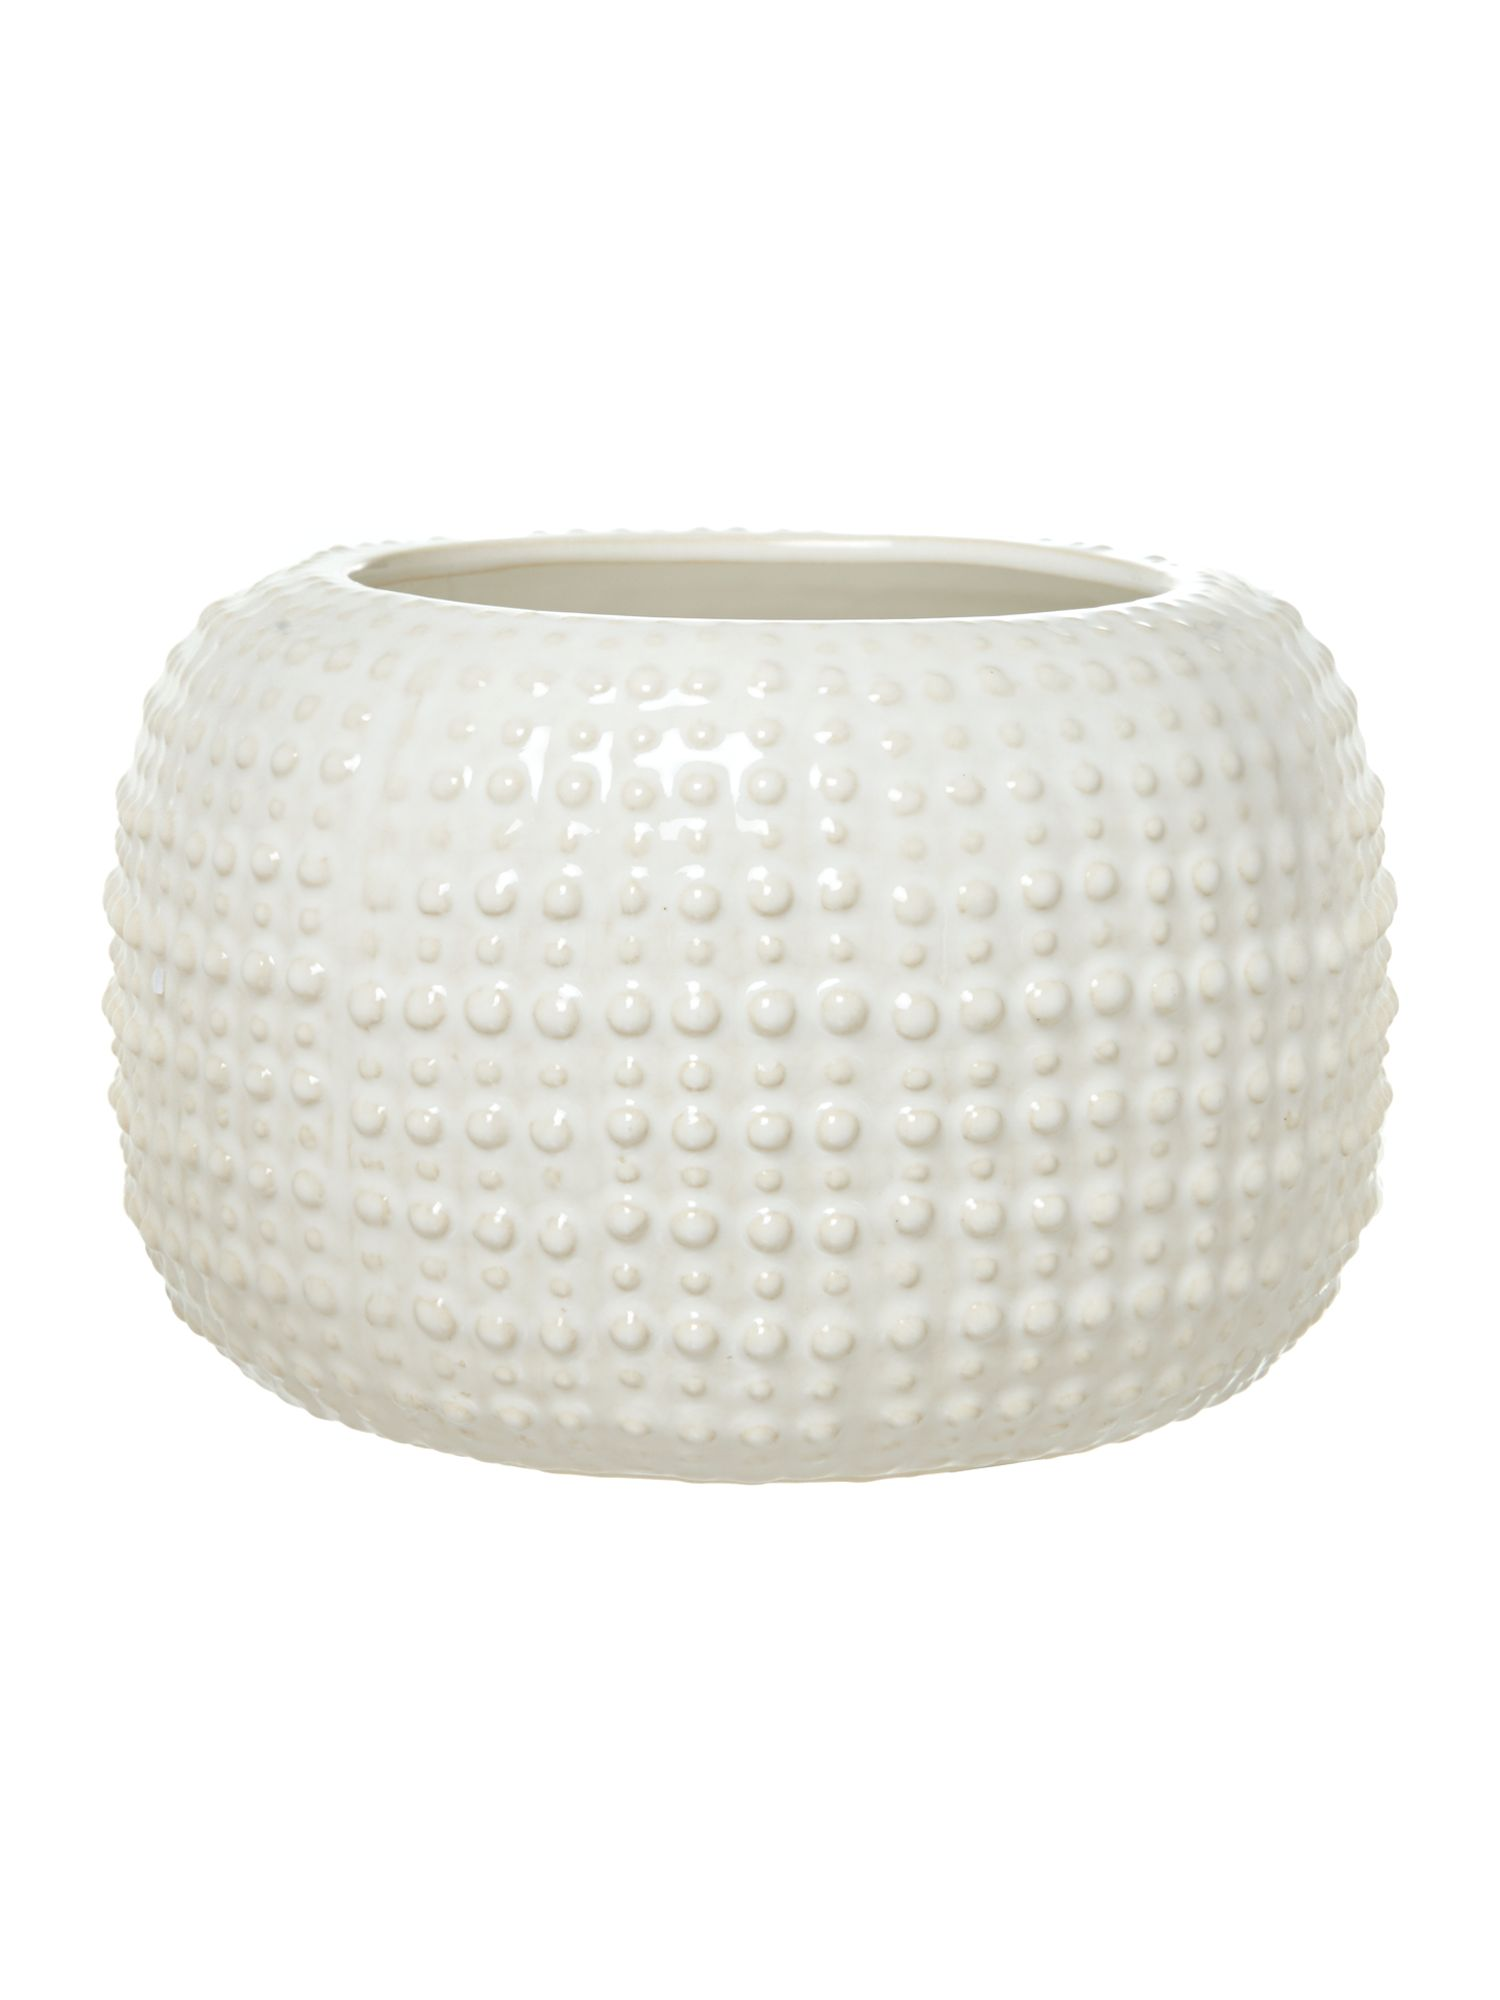 Alberte ceramic Vase white in